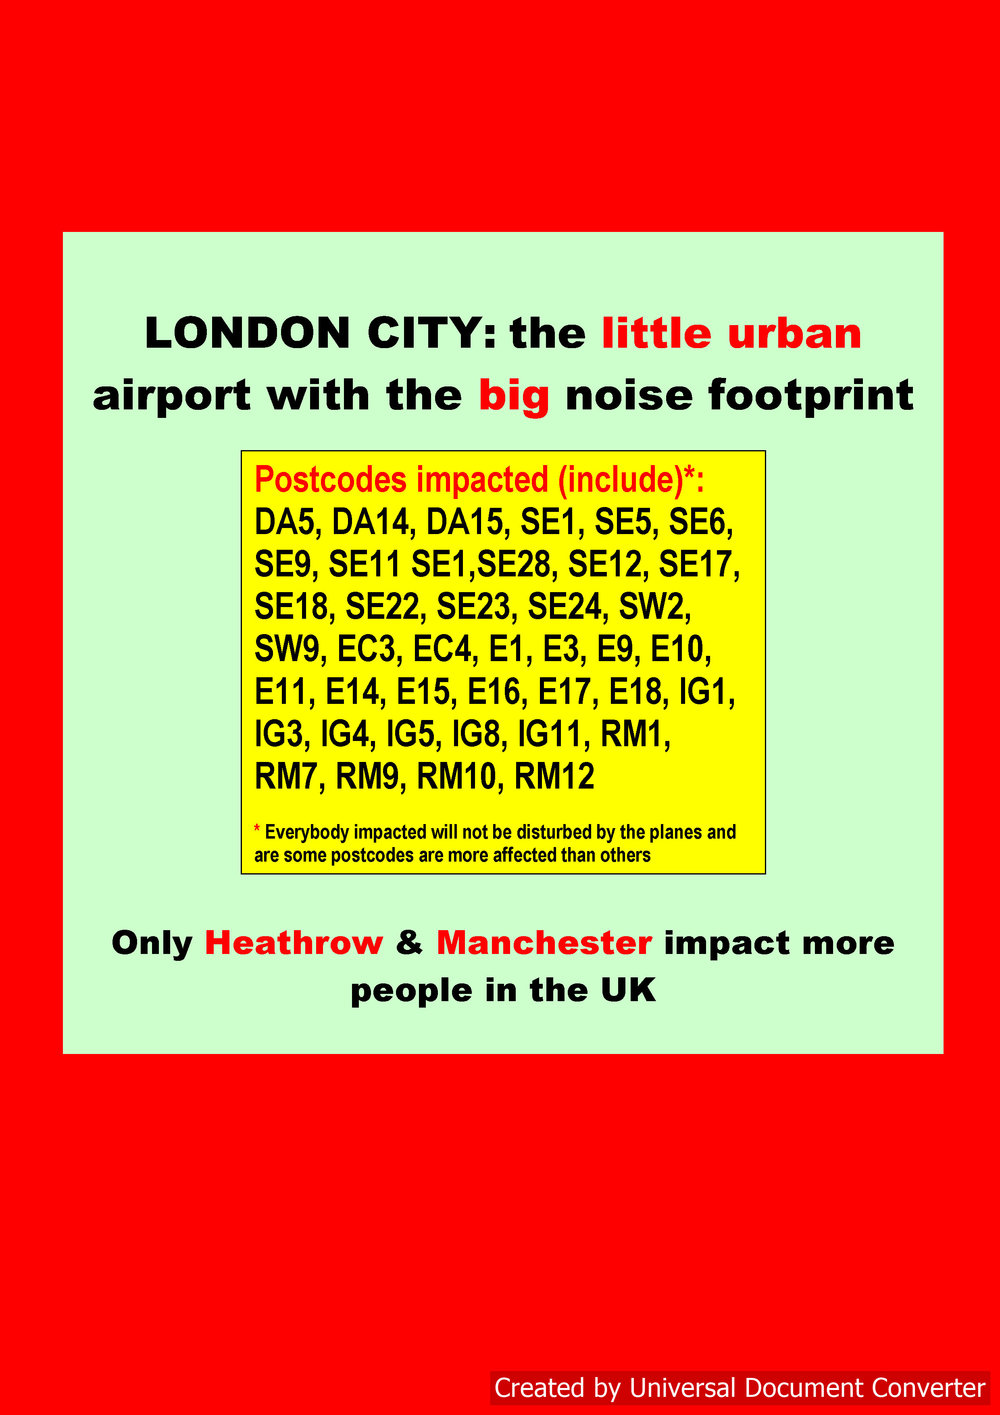 LONDON CITY footprint one.jpg